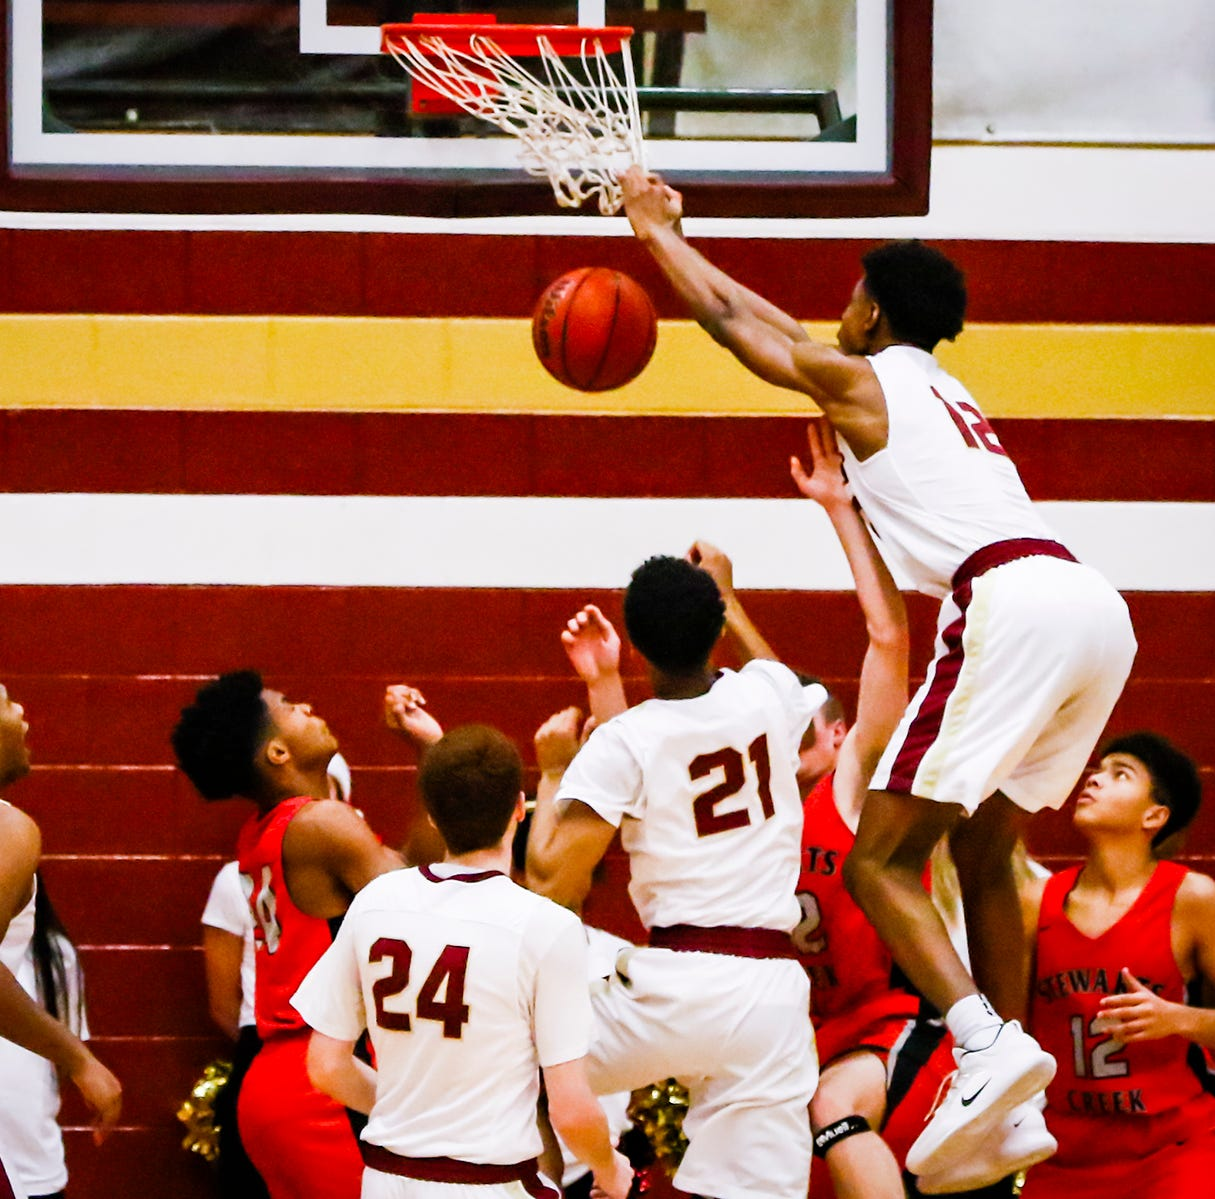 Riverdale's Elijah Cobb slams home two of his eight points during the Warriors' 73-46 win over Stewarts Creek Friday.